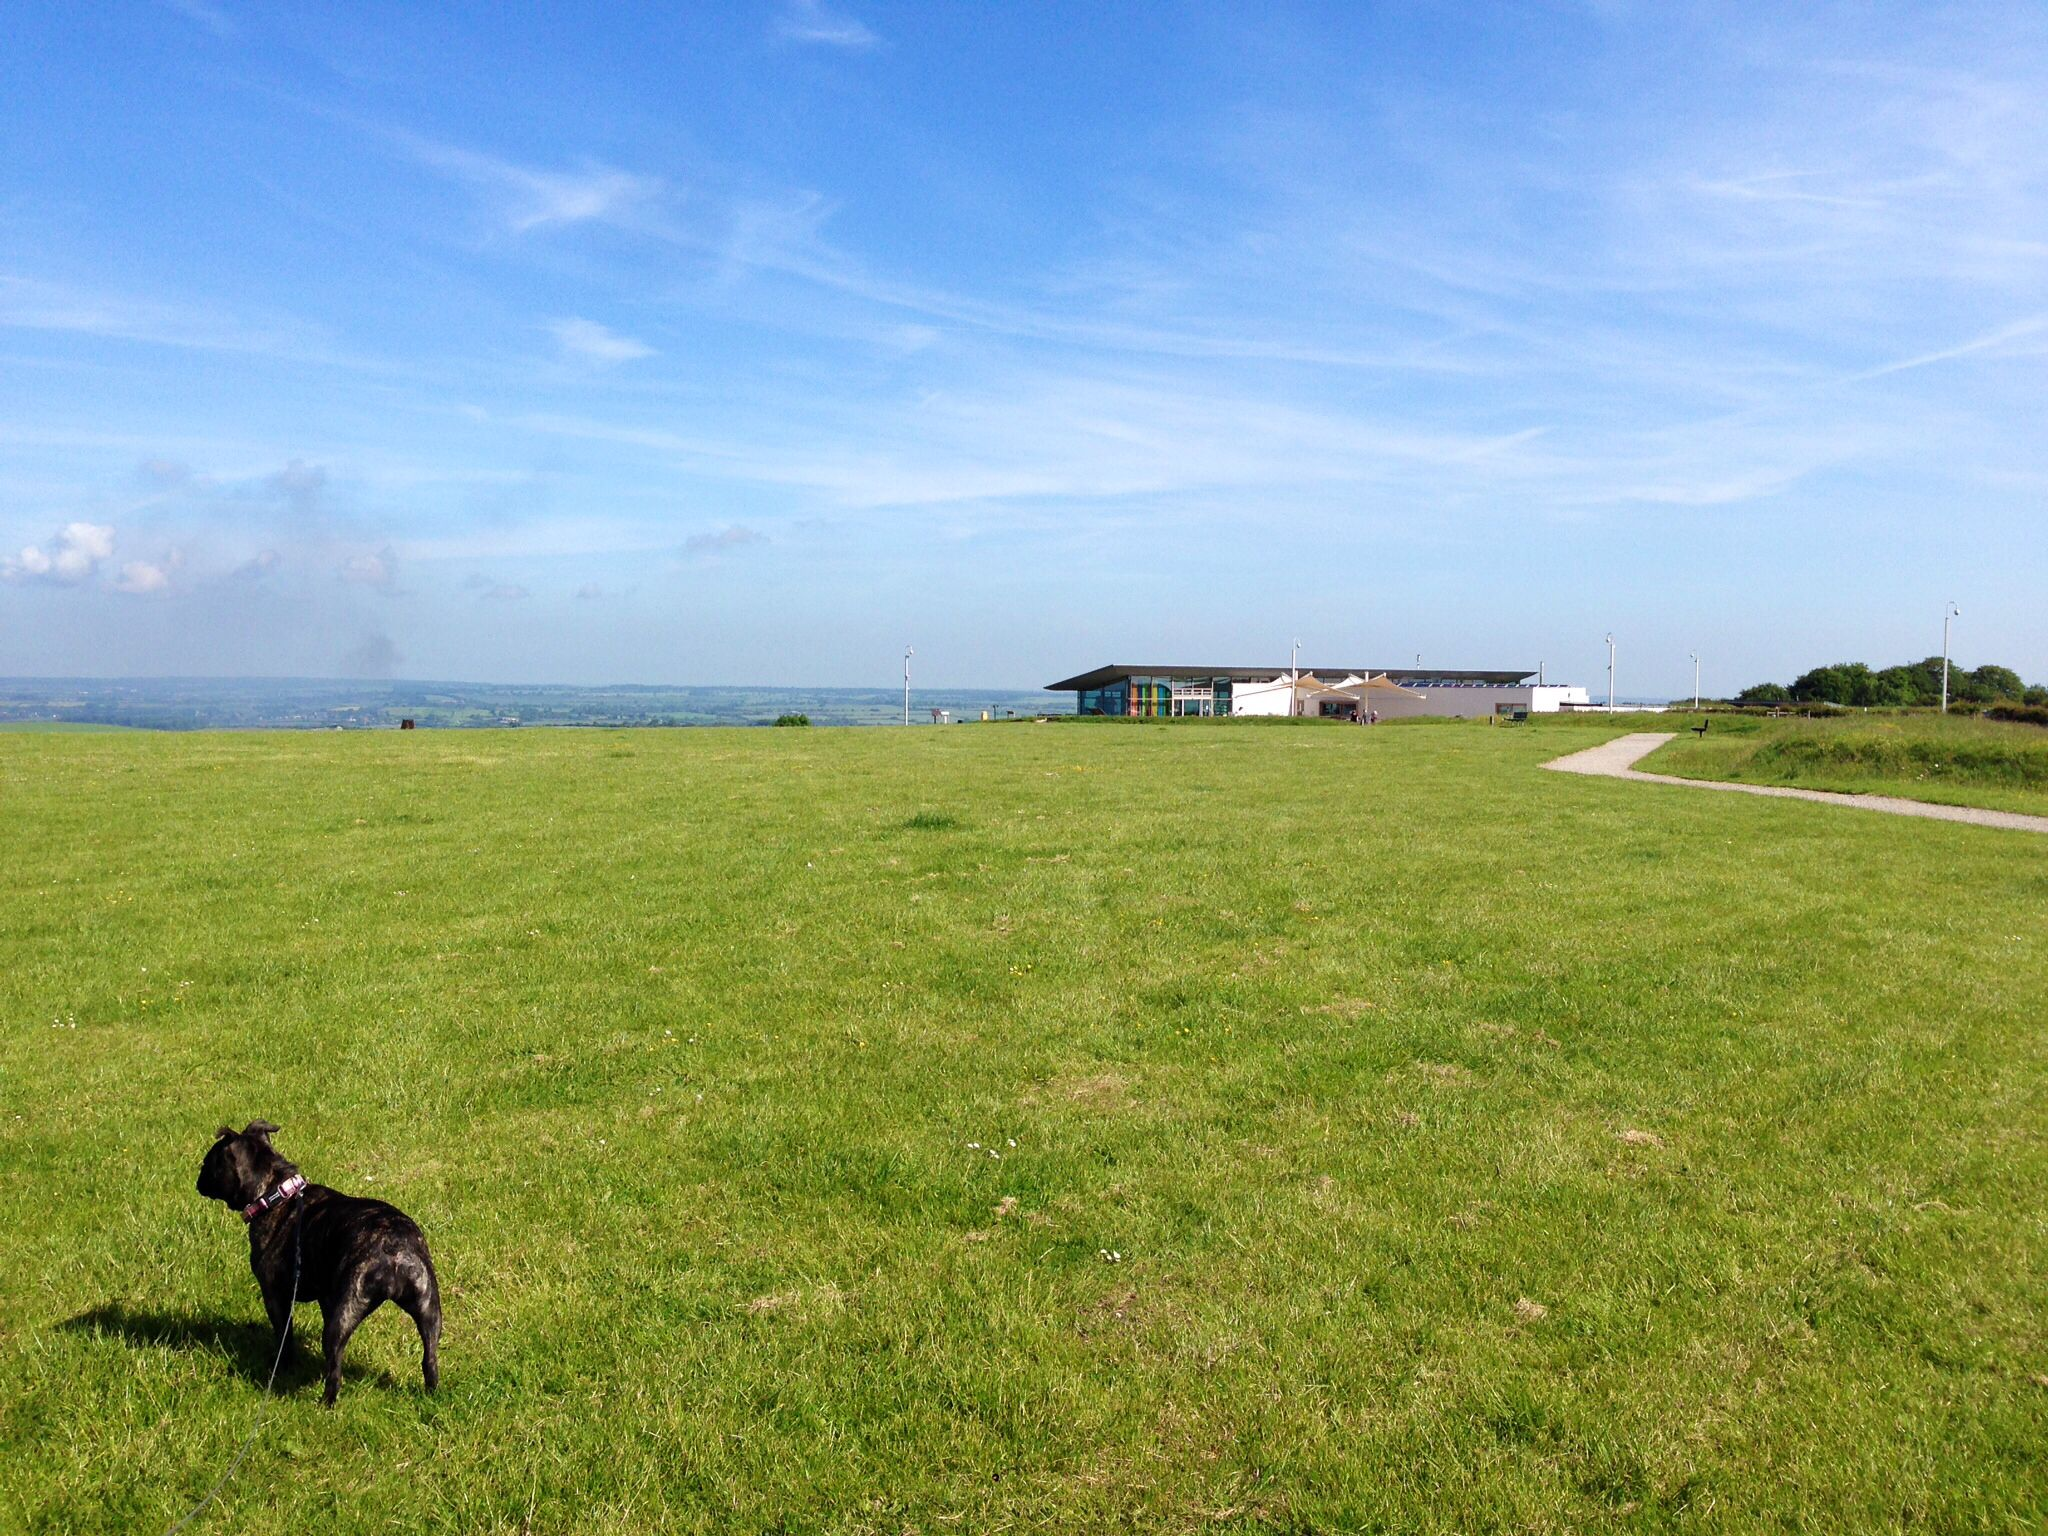 Another stunning day at Dunstable Downs.